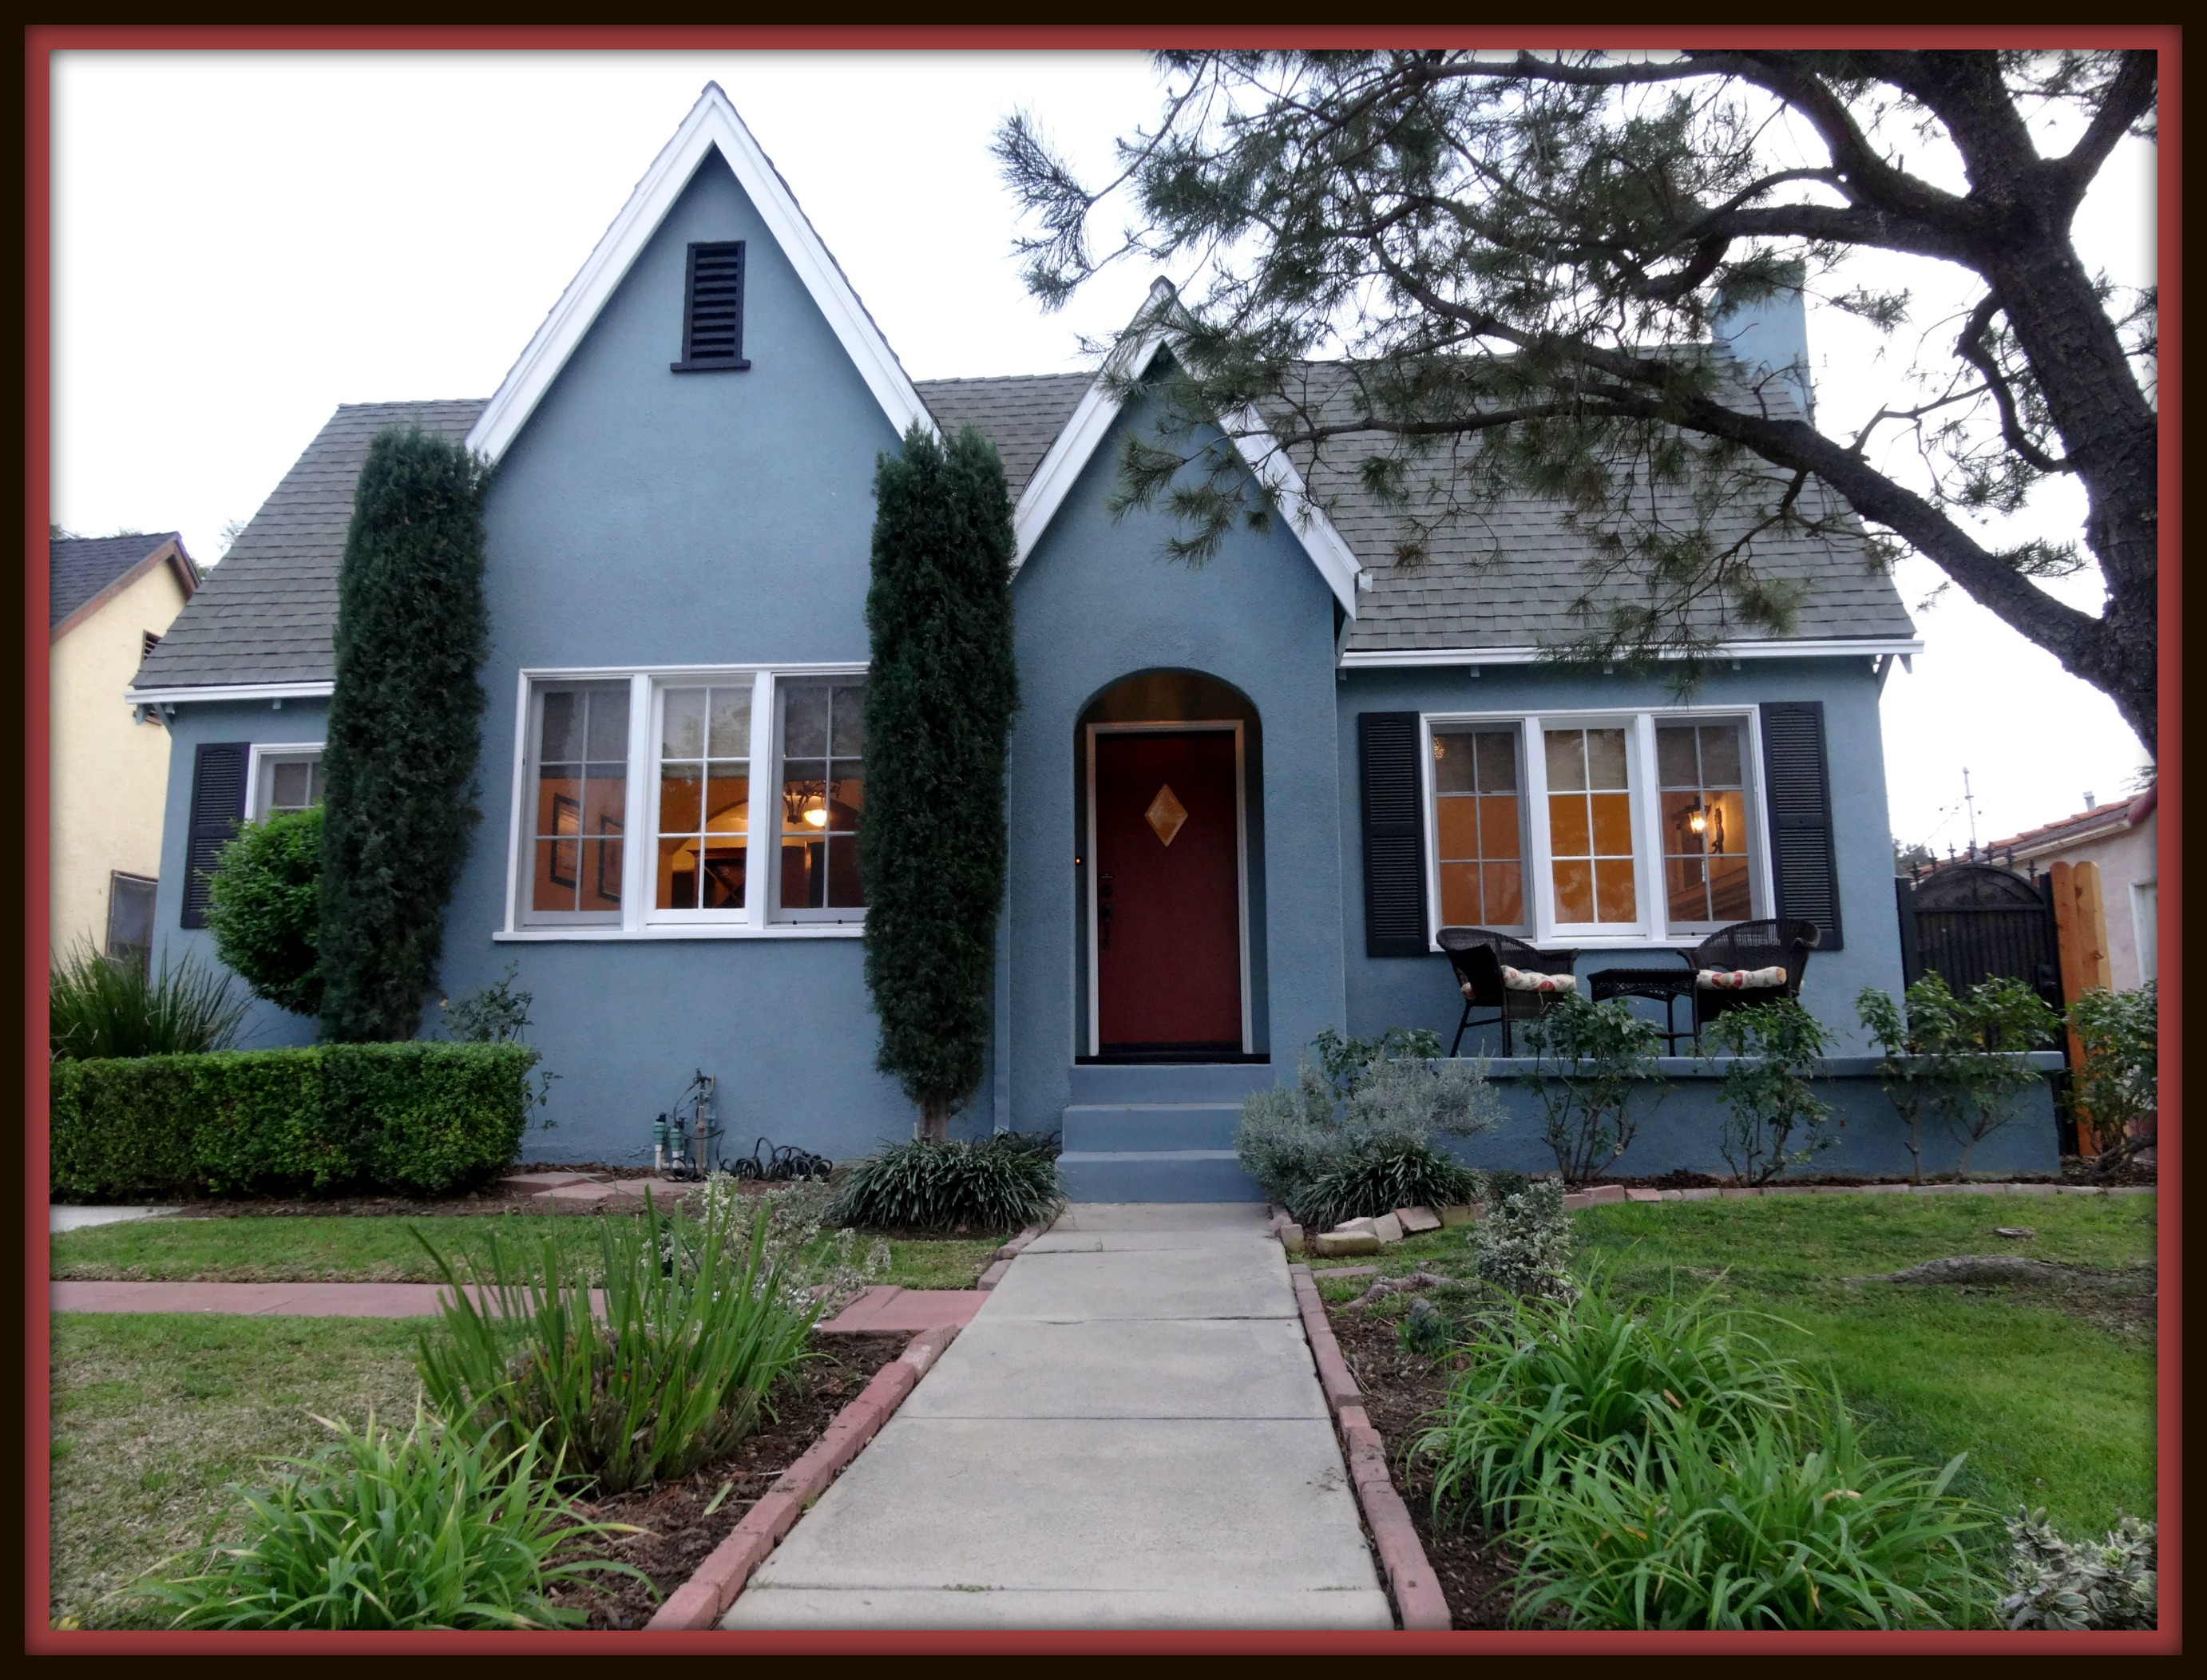 Vintage  SOLD for on Completely remodeled ucMagnolia Center ud tudor with FOUR bedrooms full bathrooms and almost sq ft